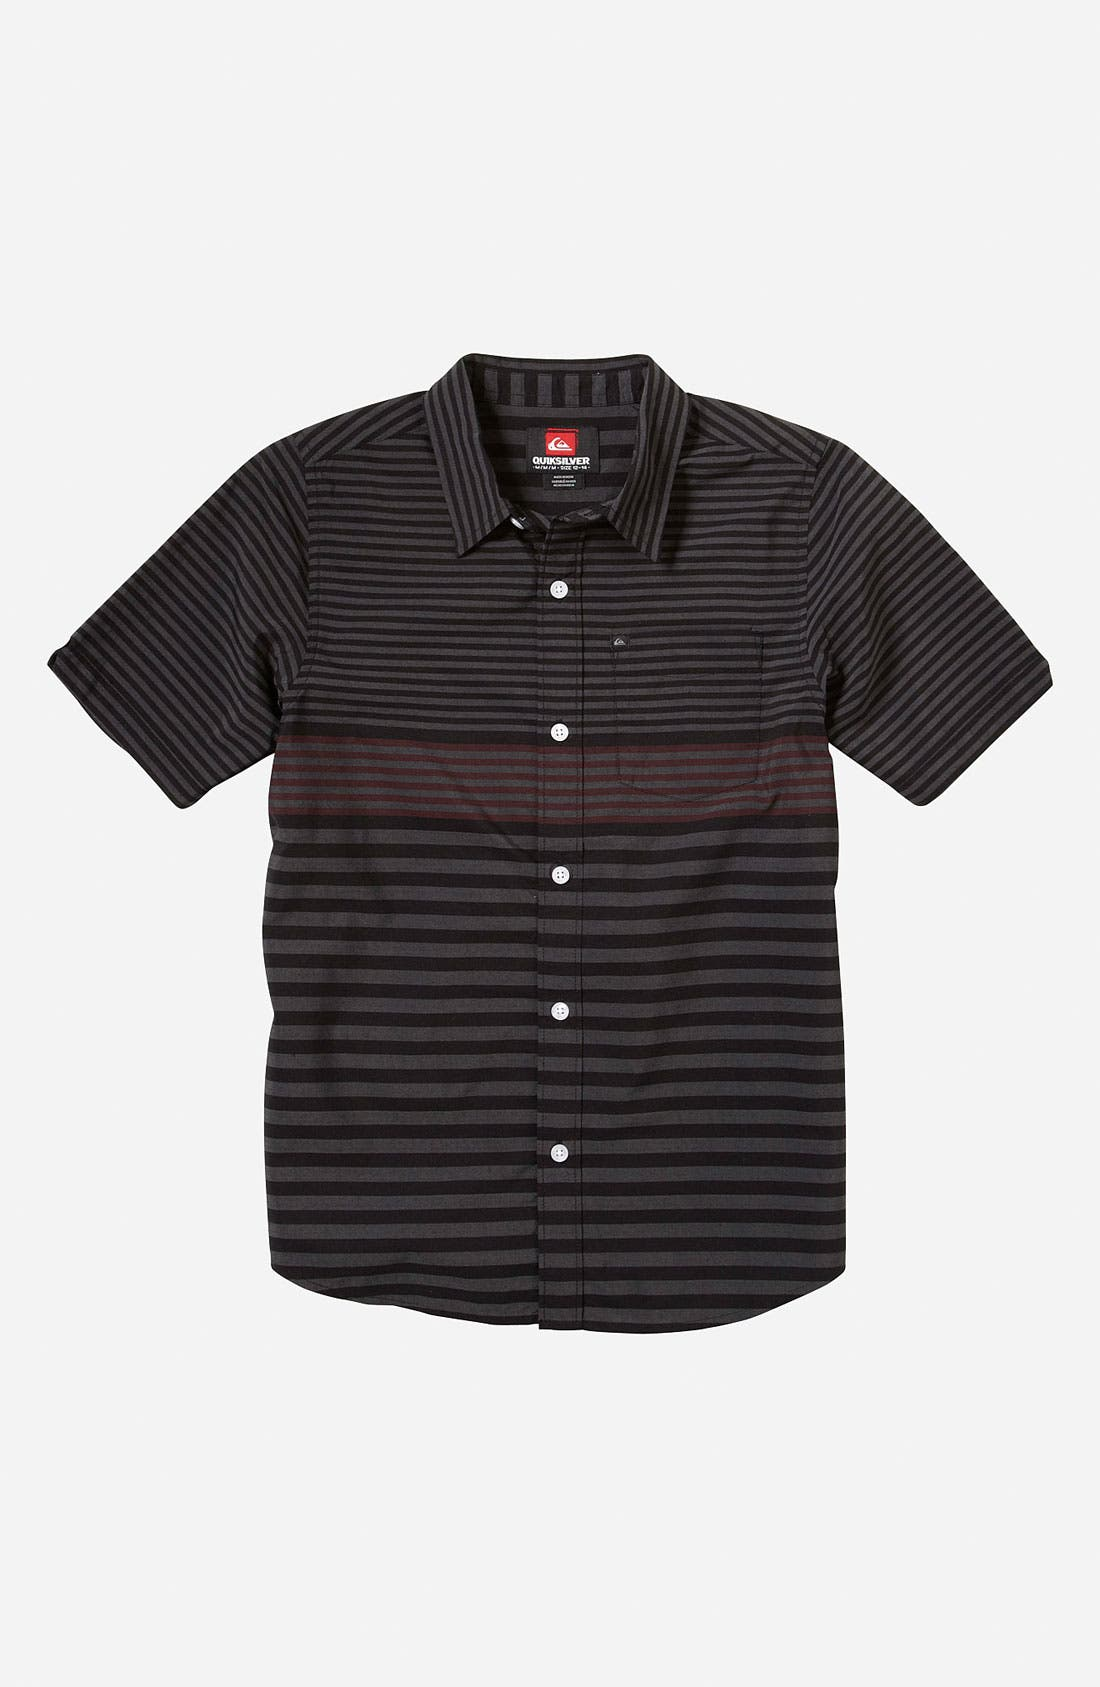 Alternate Image 1 Selected - Quiksilver 'Moving Seats' Woven Shirt (Little Boys)